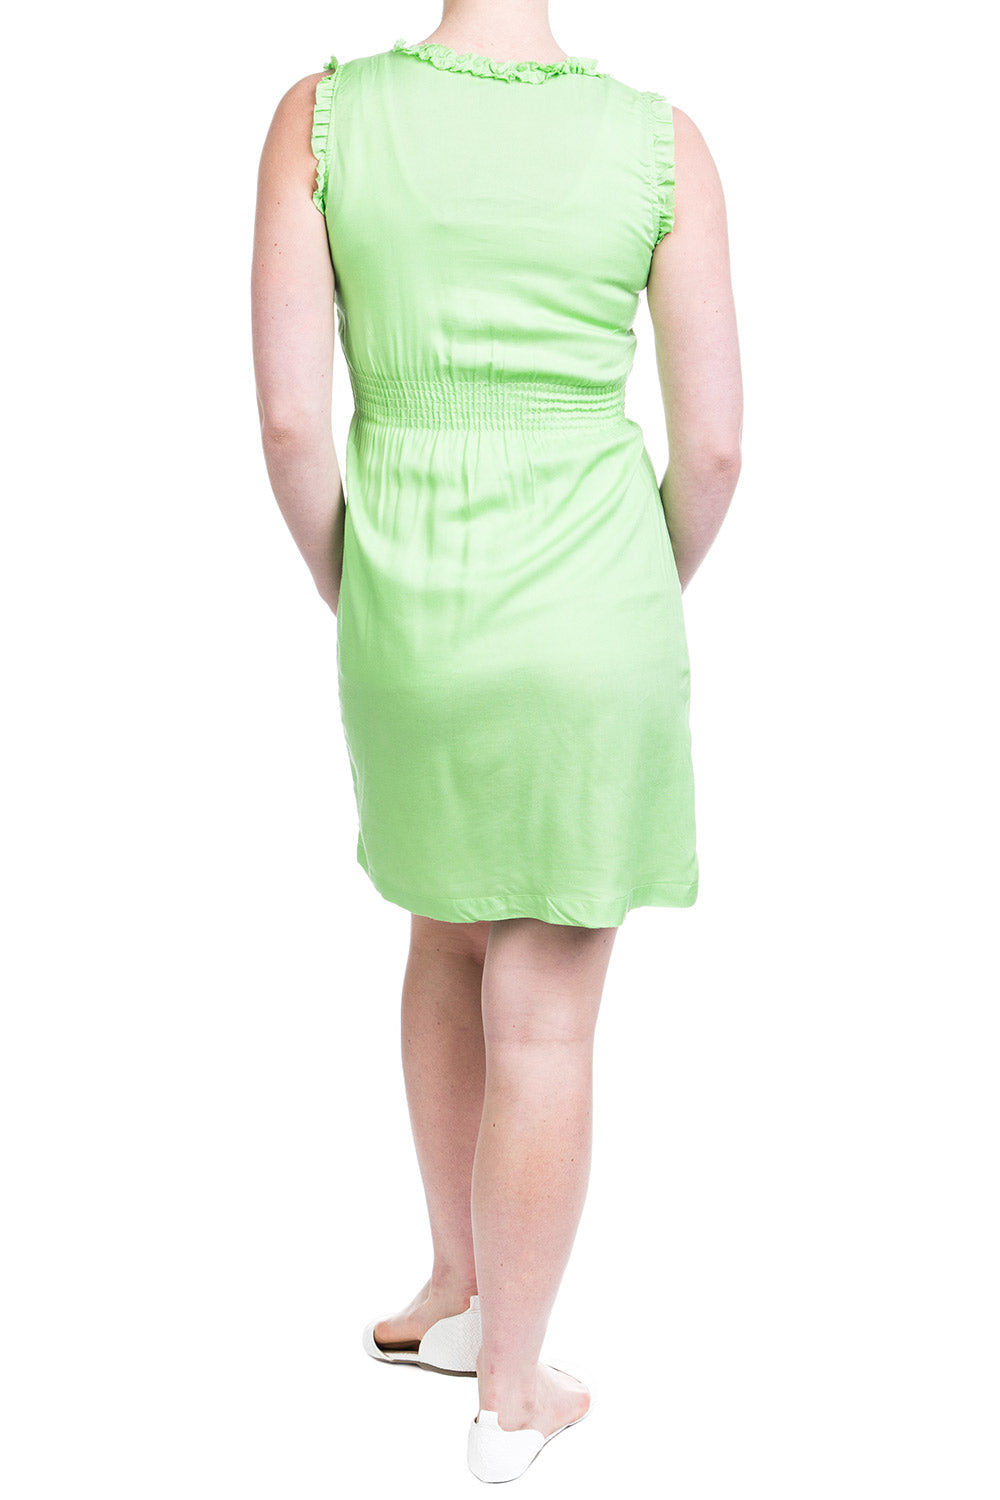 Type 1 Lime Rickey Dress